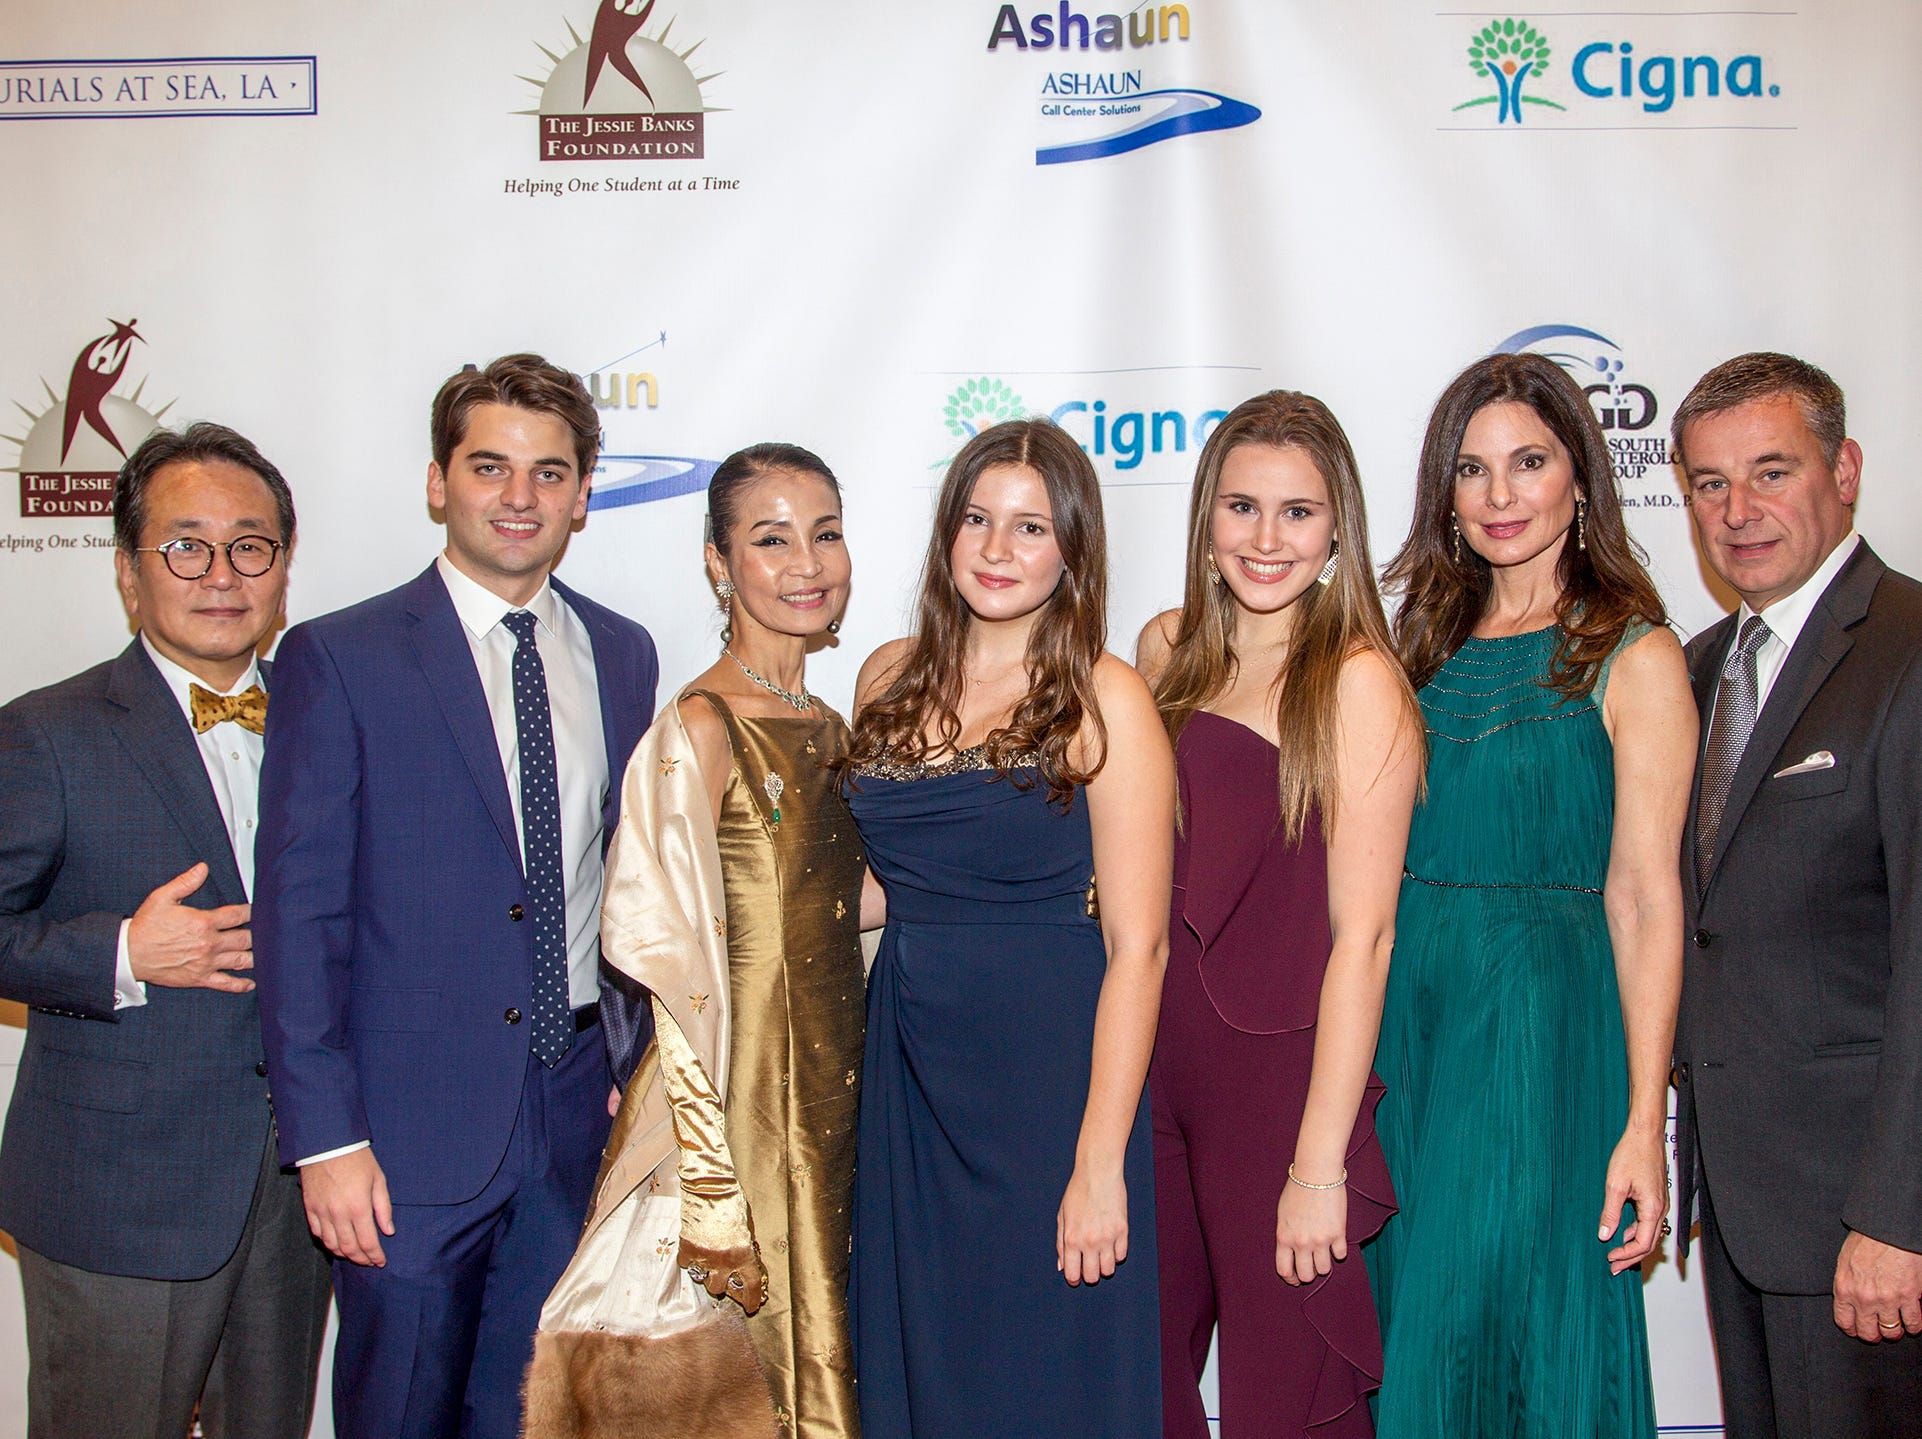 Dr. Mingi Choi, Mrs Heather Won Choi, Catherine, Lily, Christine and Dr. Dante  Implicito. Jessie Banks Foundation holds 16th annual Scholarship Awards Gala in Teaneck. 11/09/2018